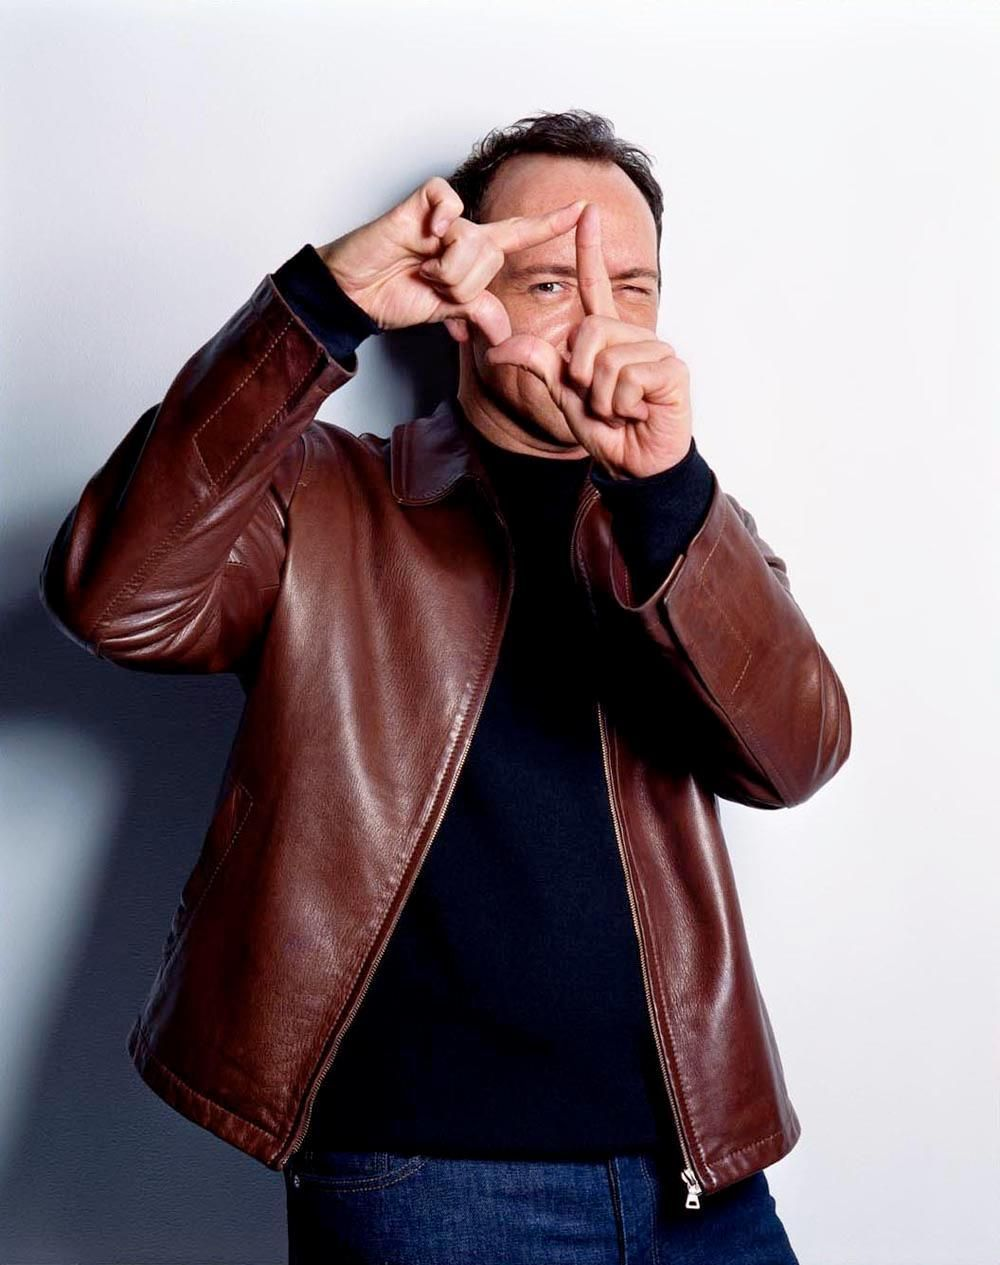 Kevin spacey one eye symbolism inside the pyramid r u 3rd eye one eye symbolism inside the pyramid biocorpaavc